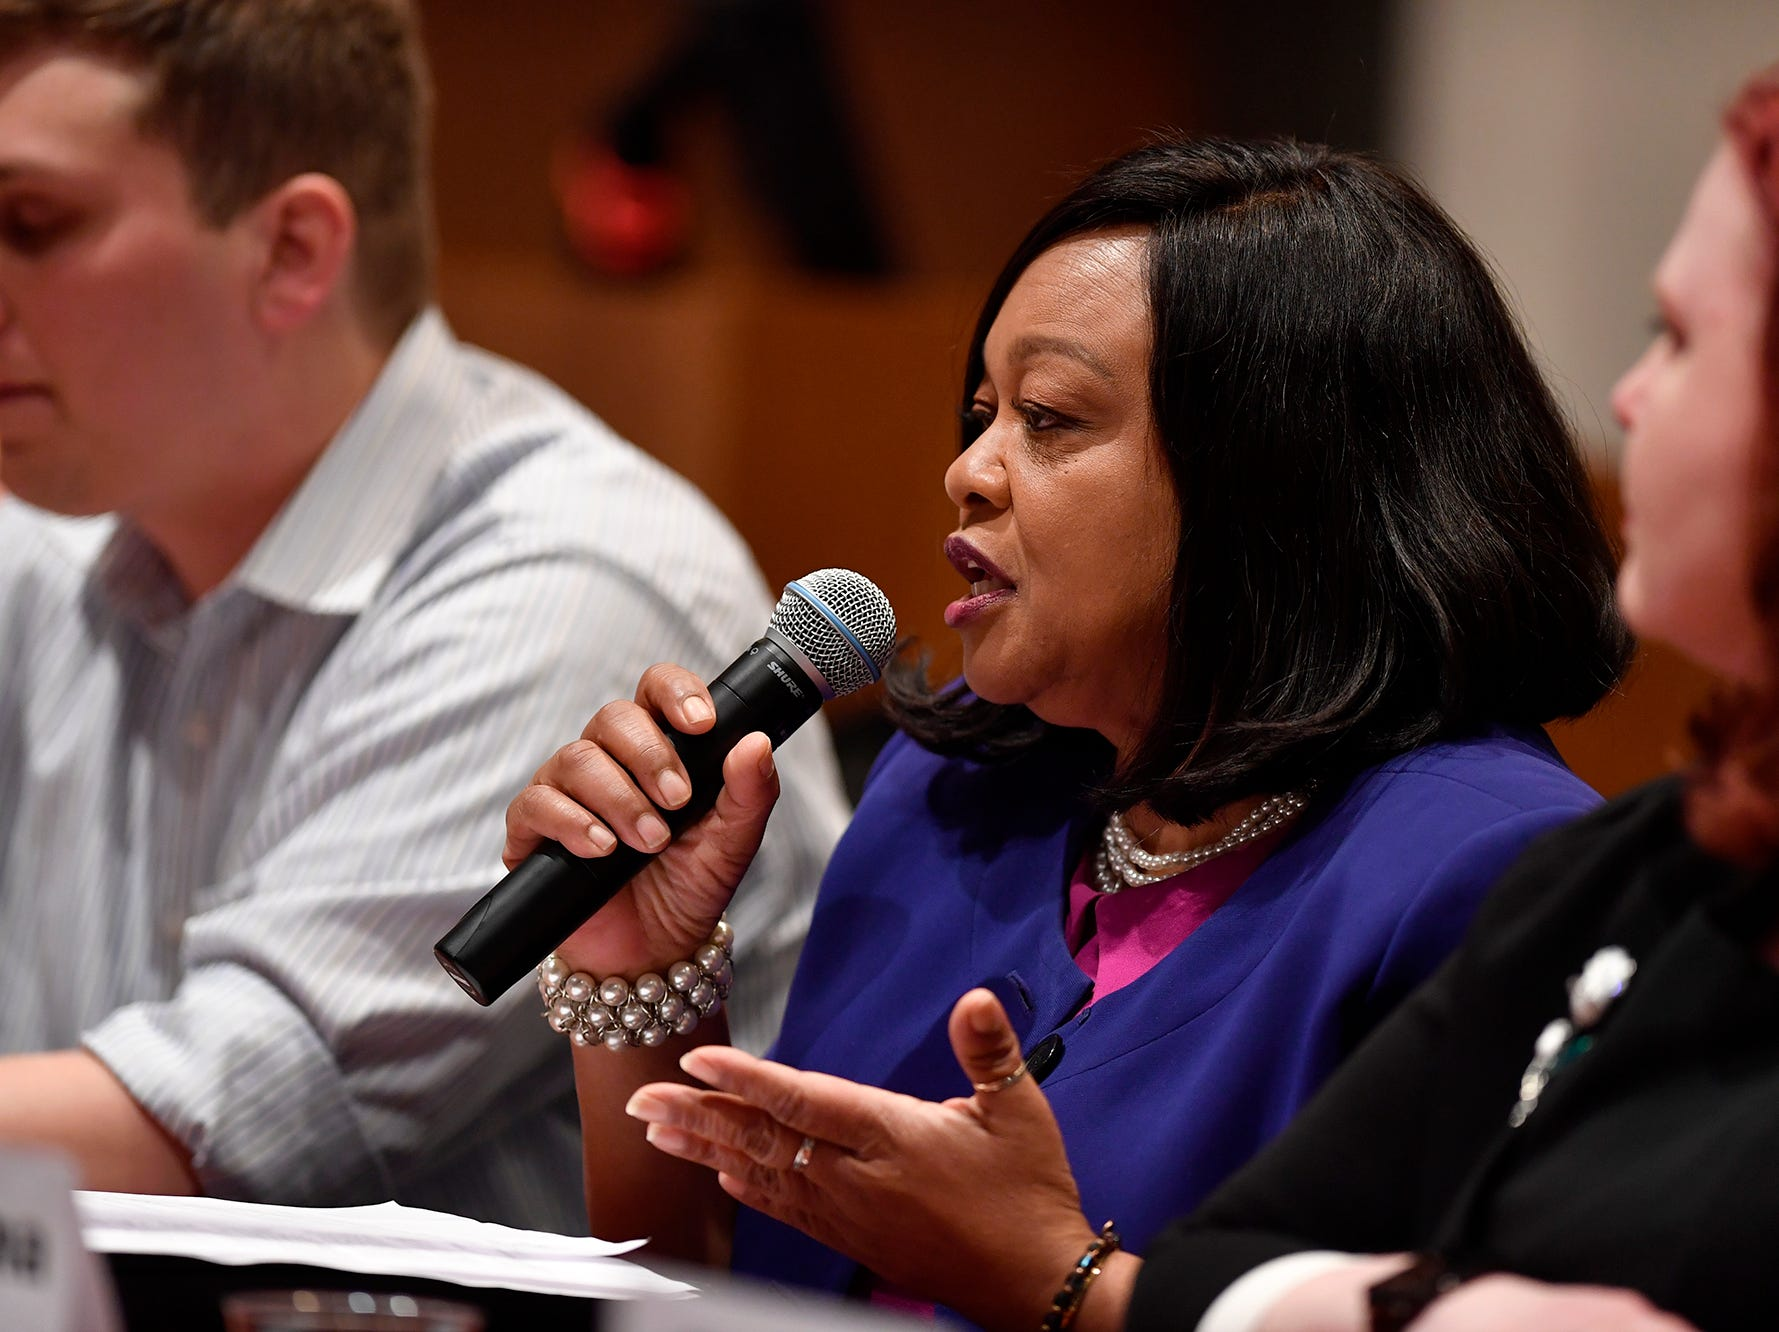 Sandra Harrison (D) candidate for Prothonotary, takes part in the York Stands Up bipartisan countywide candidates forum in the Weinstock Lecture Hall inside the Willman Business Center at York College, Monday, May 6, 2019.John A. Pavoncello photo